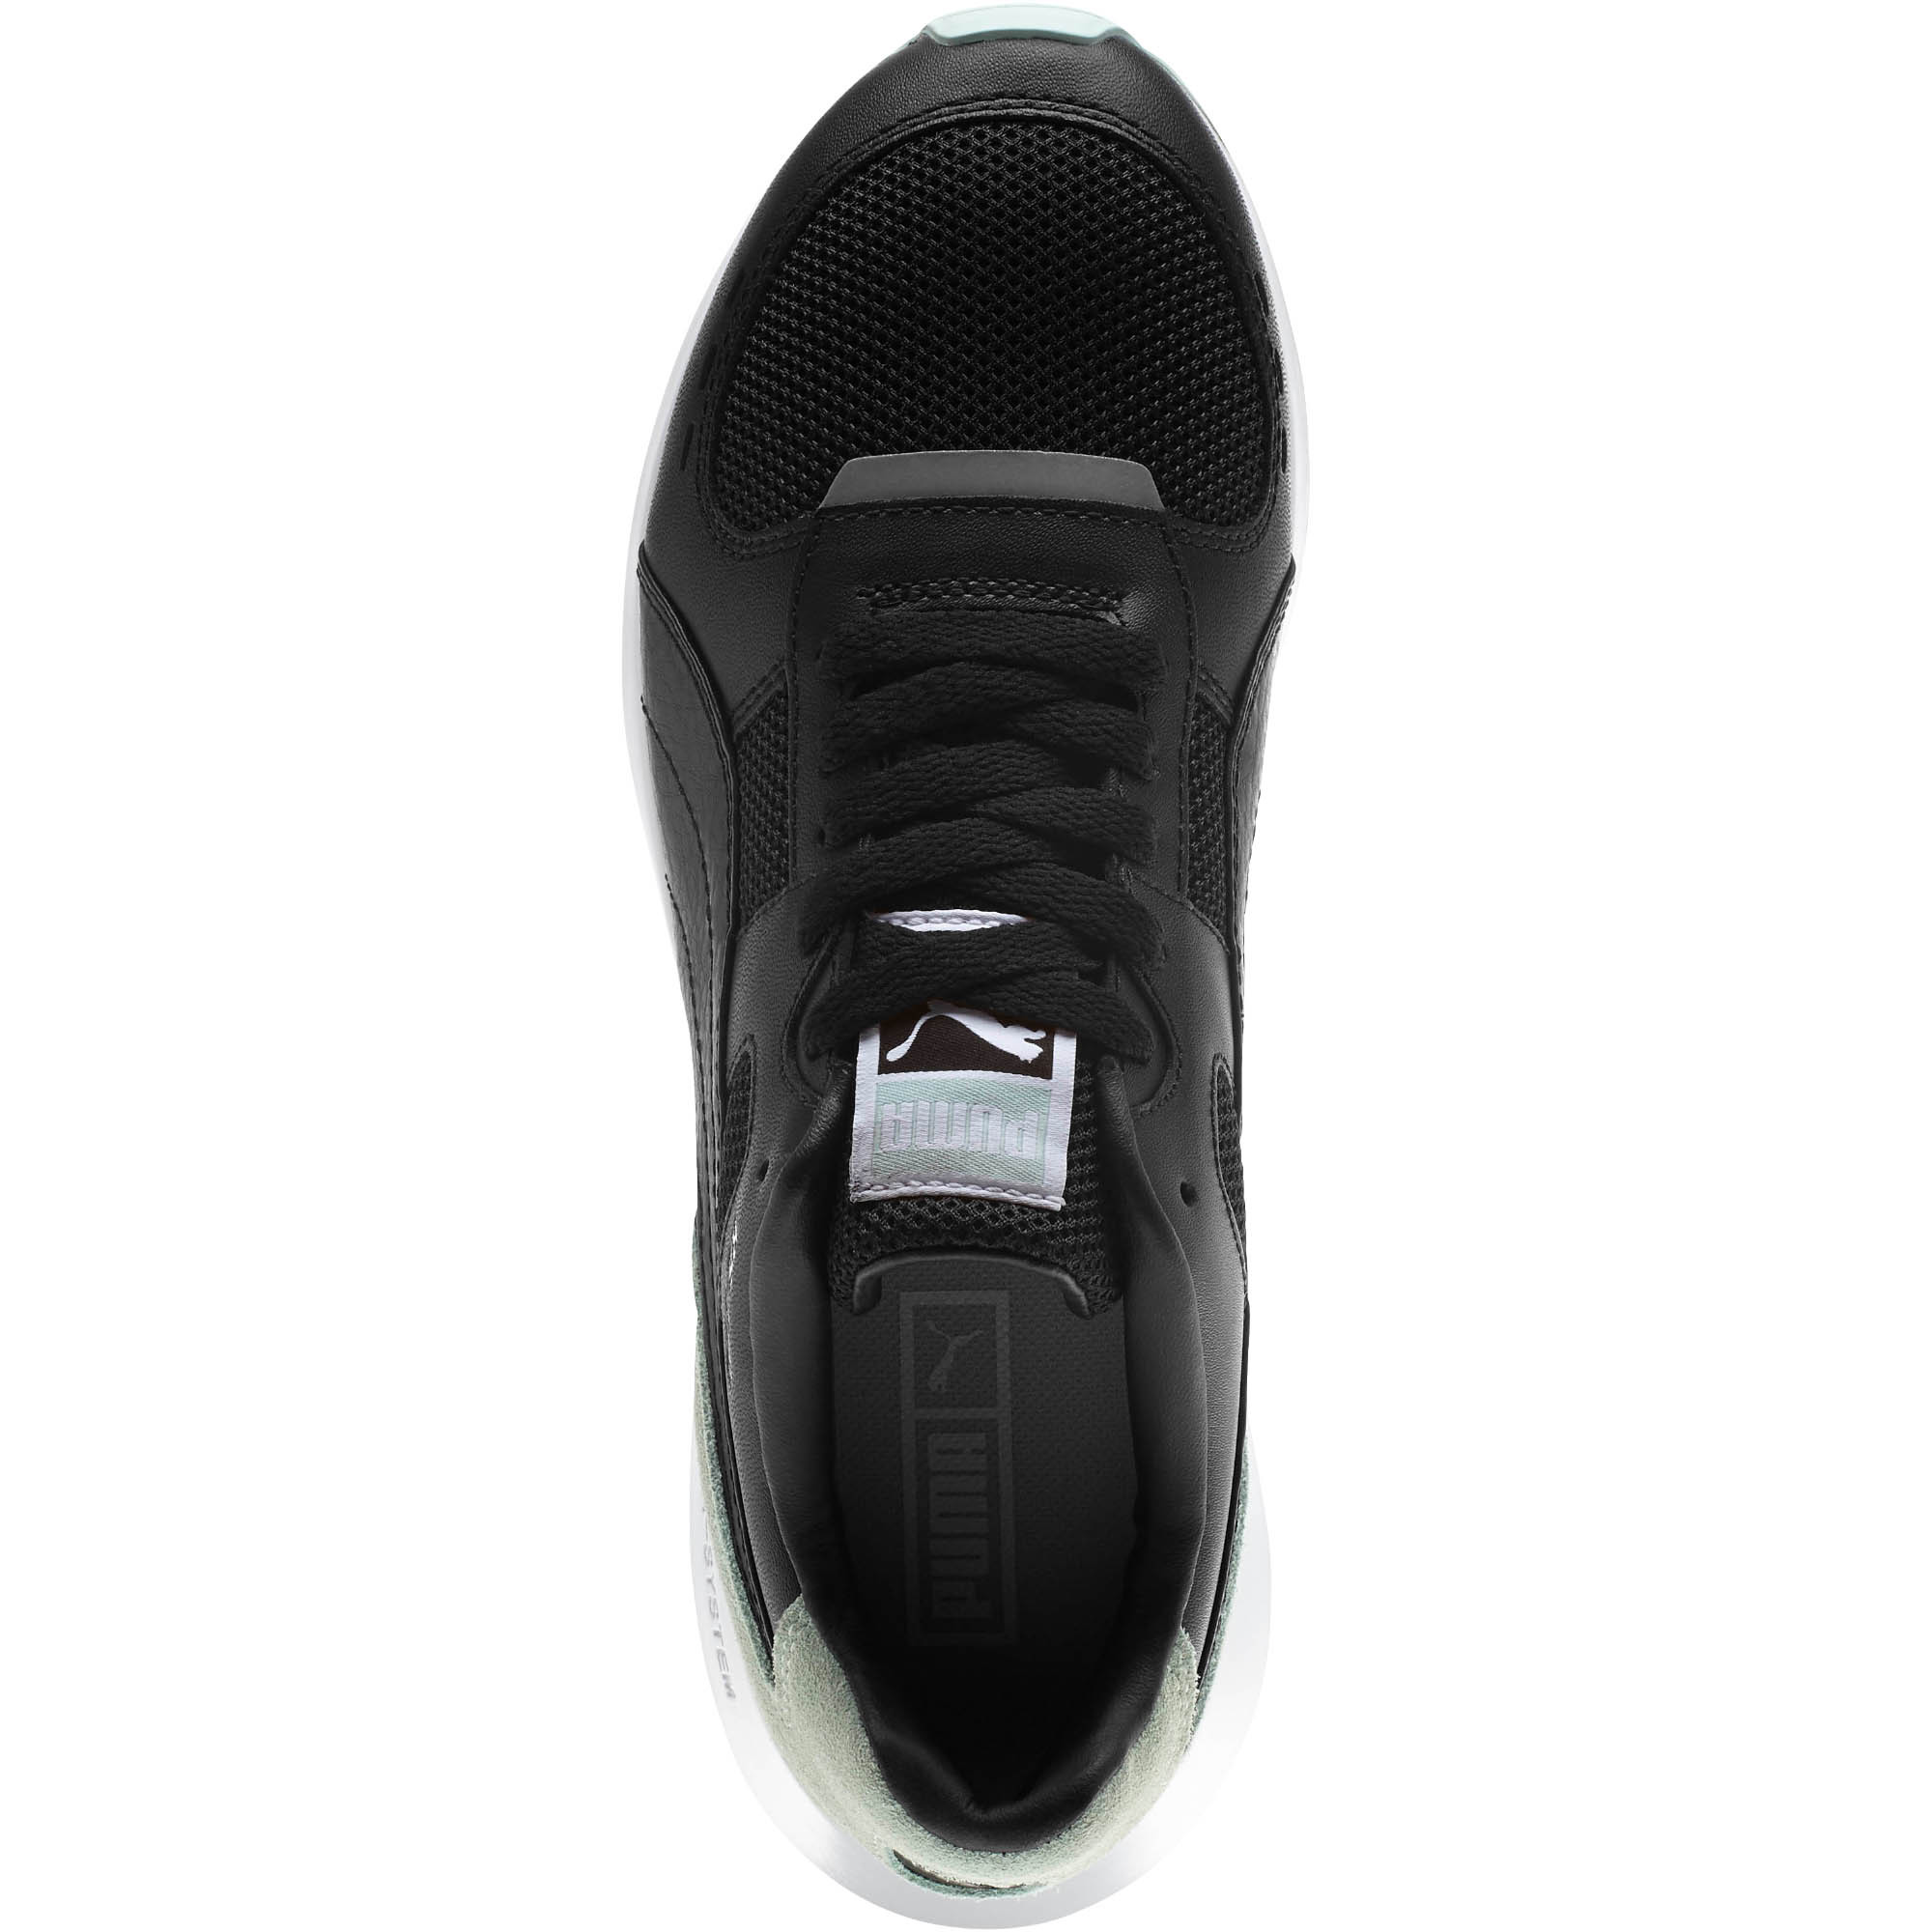 PUMA-Women-039-s-RS-150-Contrast-Sneakers thumbnail 11